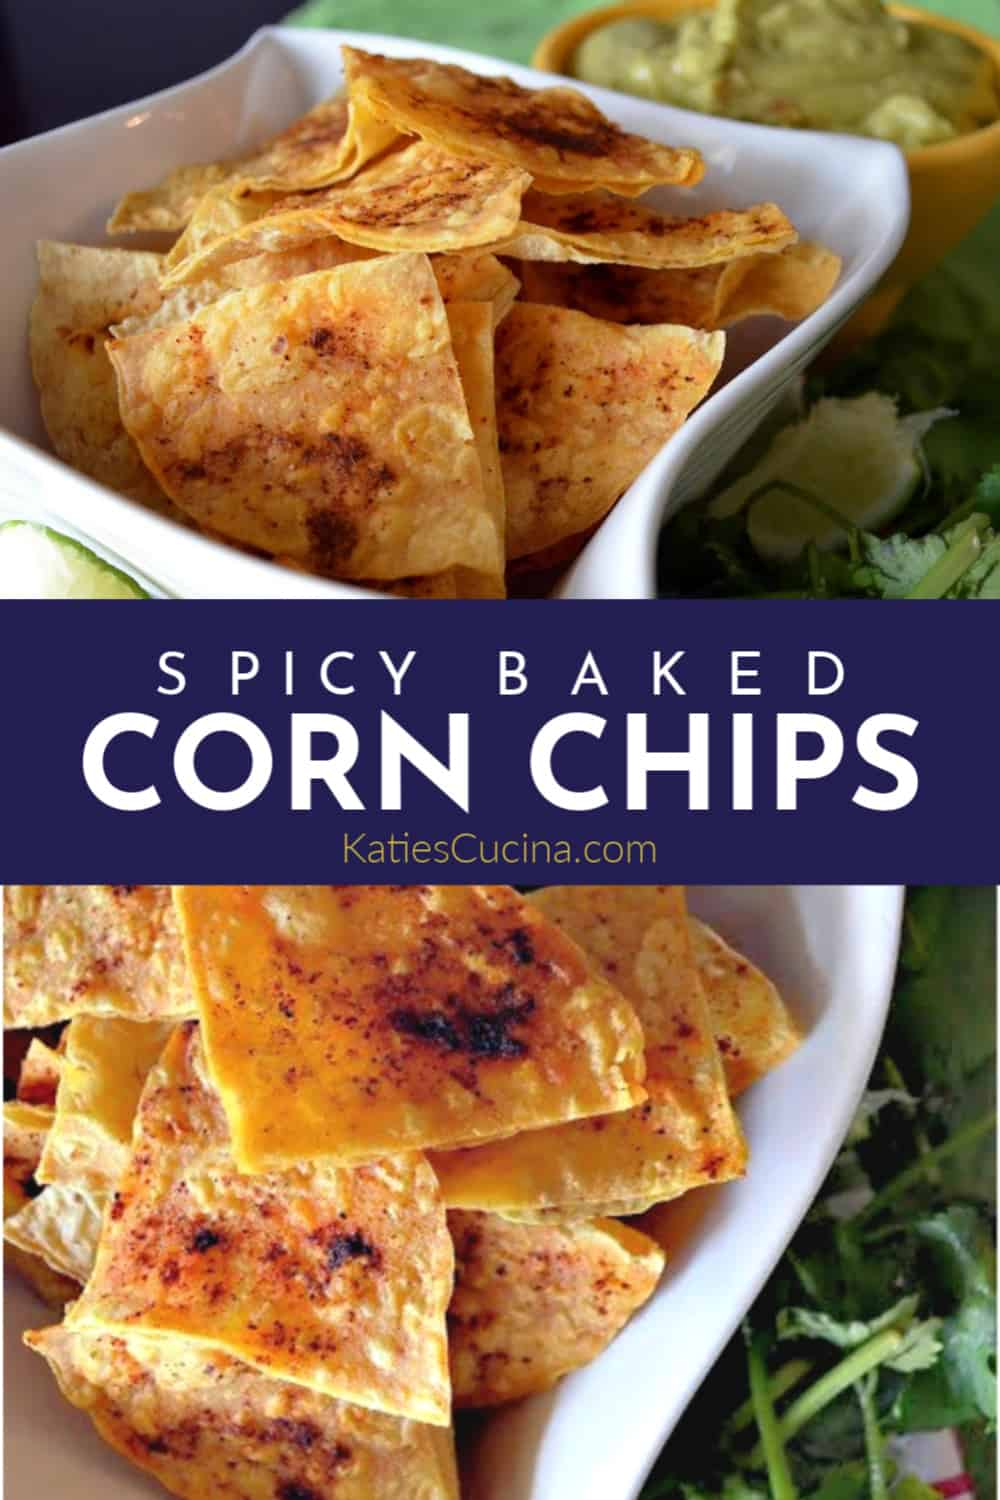 Spicy Baked Corn Chips Collage with Text